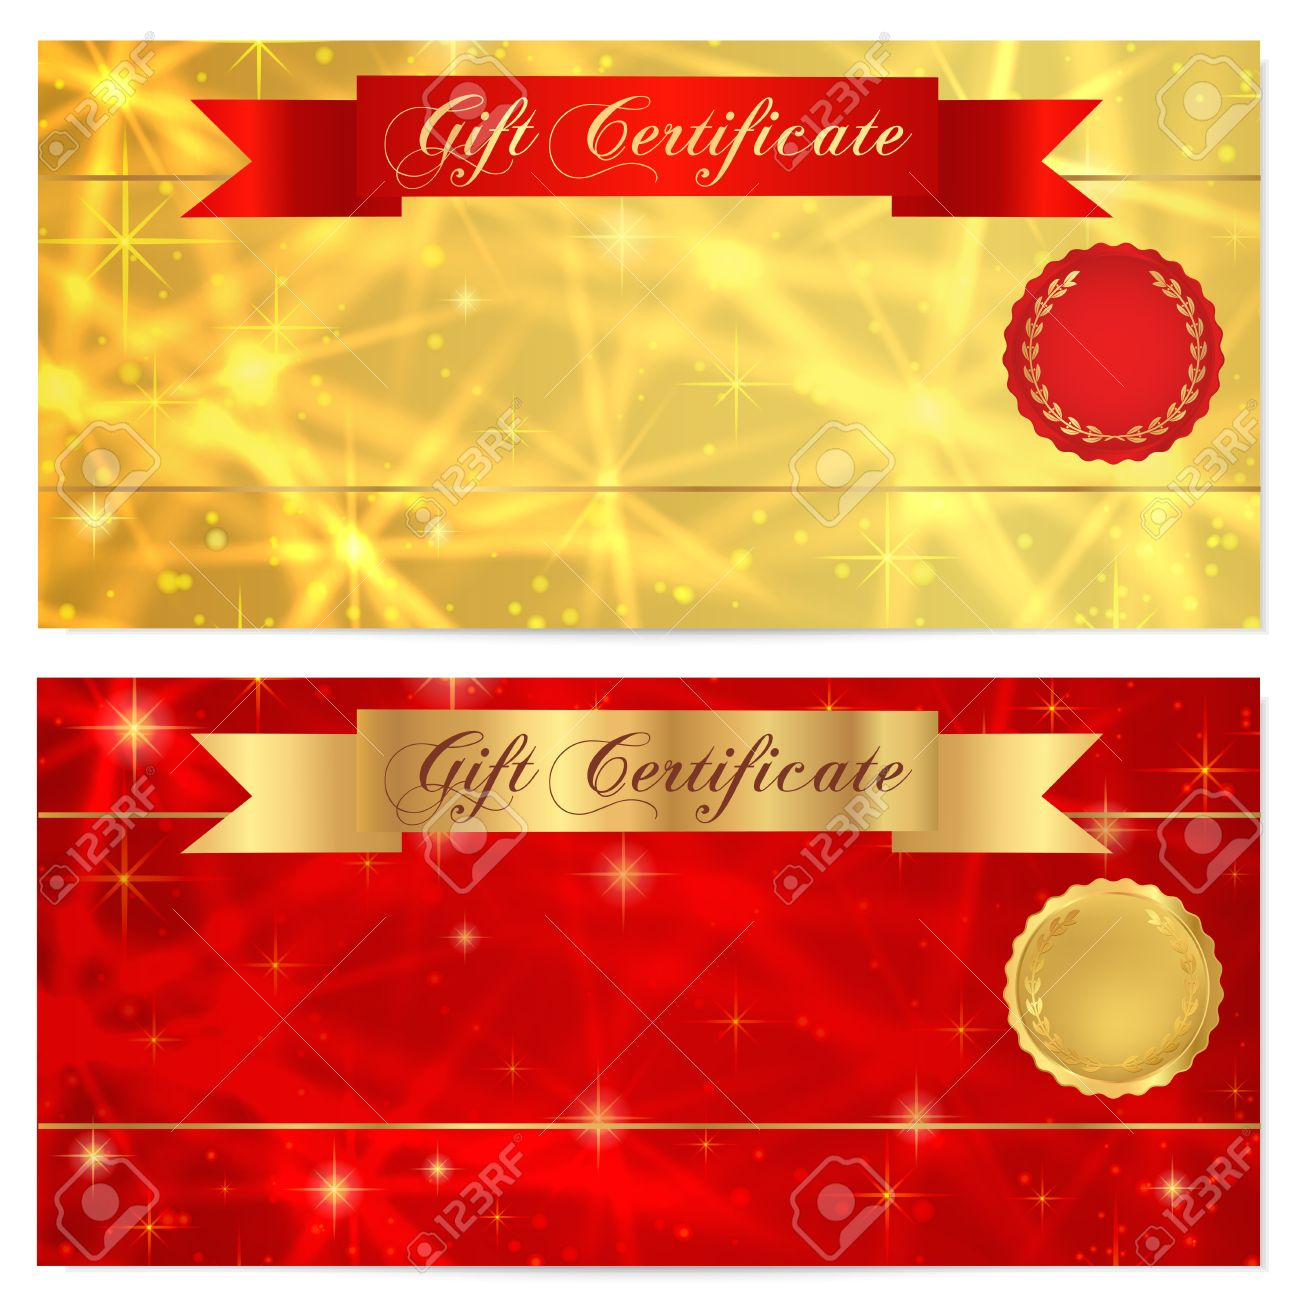 Gift Certificate, Voucher, Coupon, Reward Or Gift Card Template With  Sparkling, Twinkling  Gift Card Templates